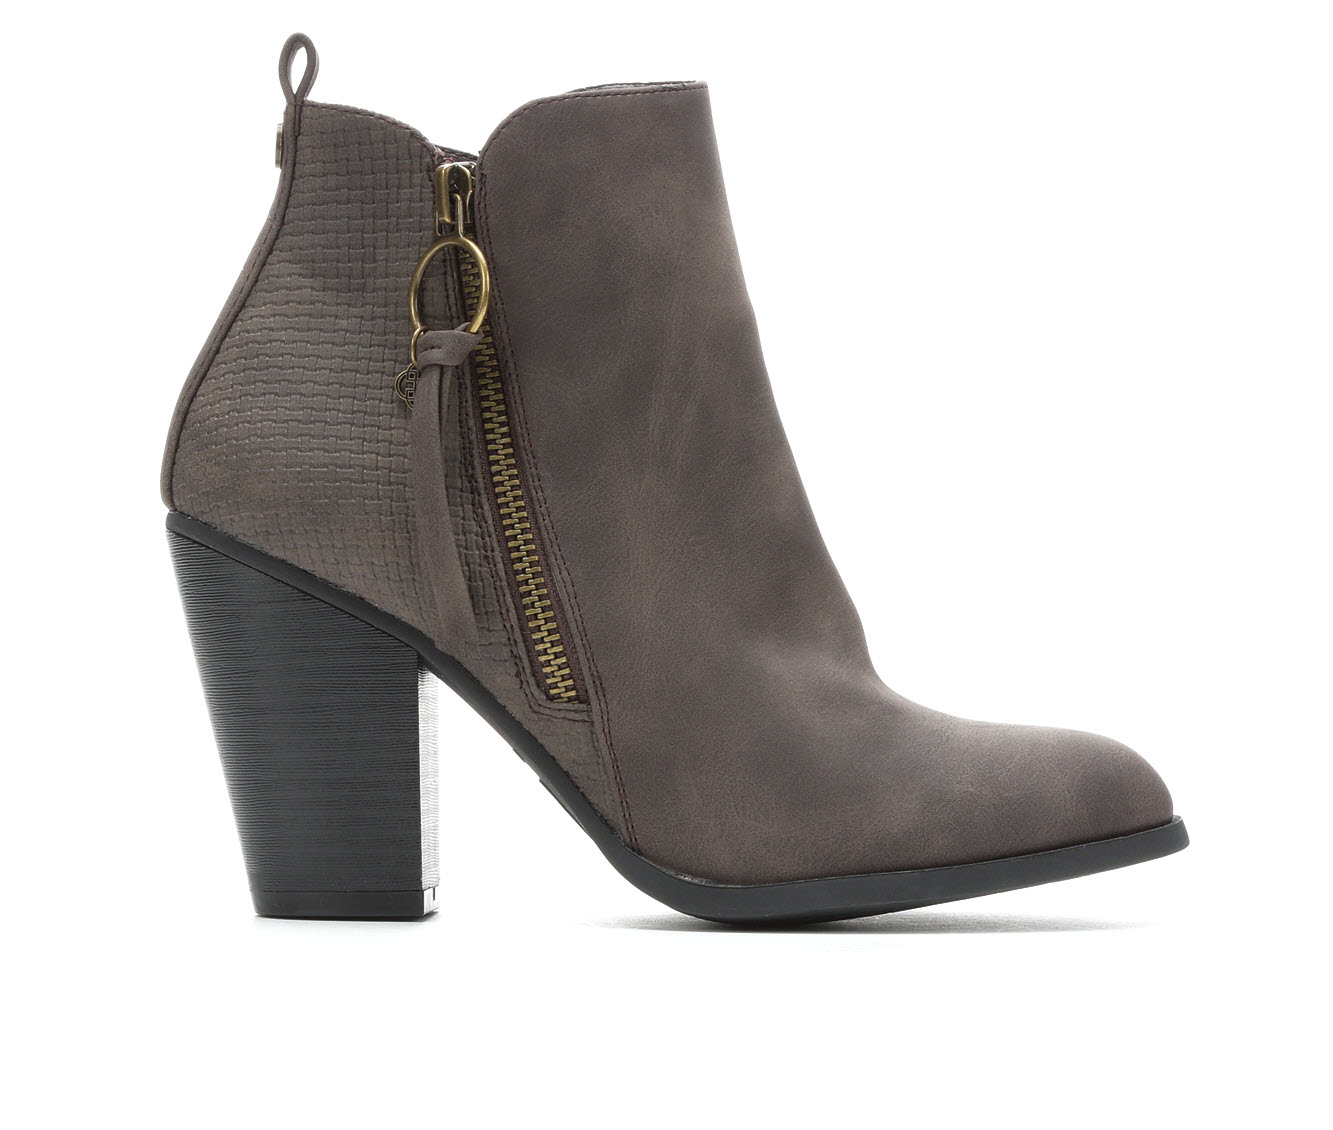 Daisy Fuentes Clay Women's Boot (Brown Faux Leather)